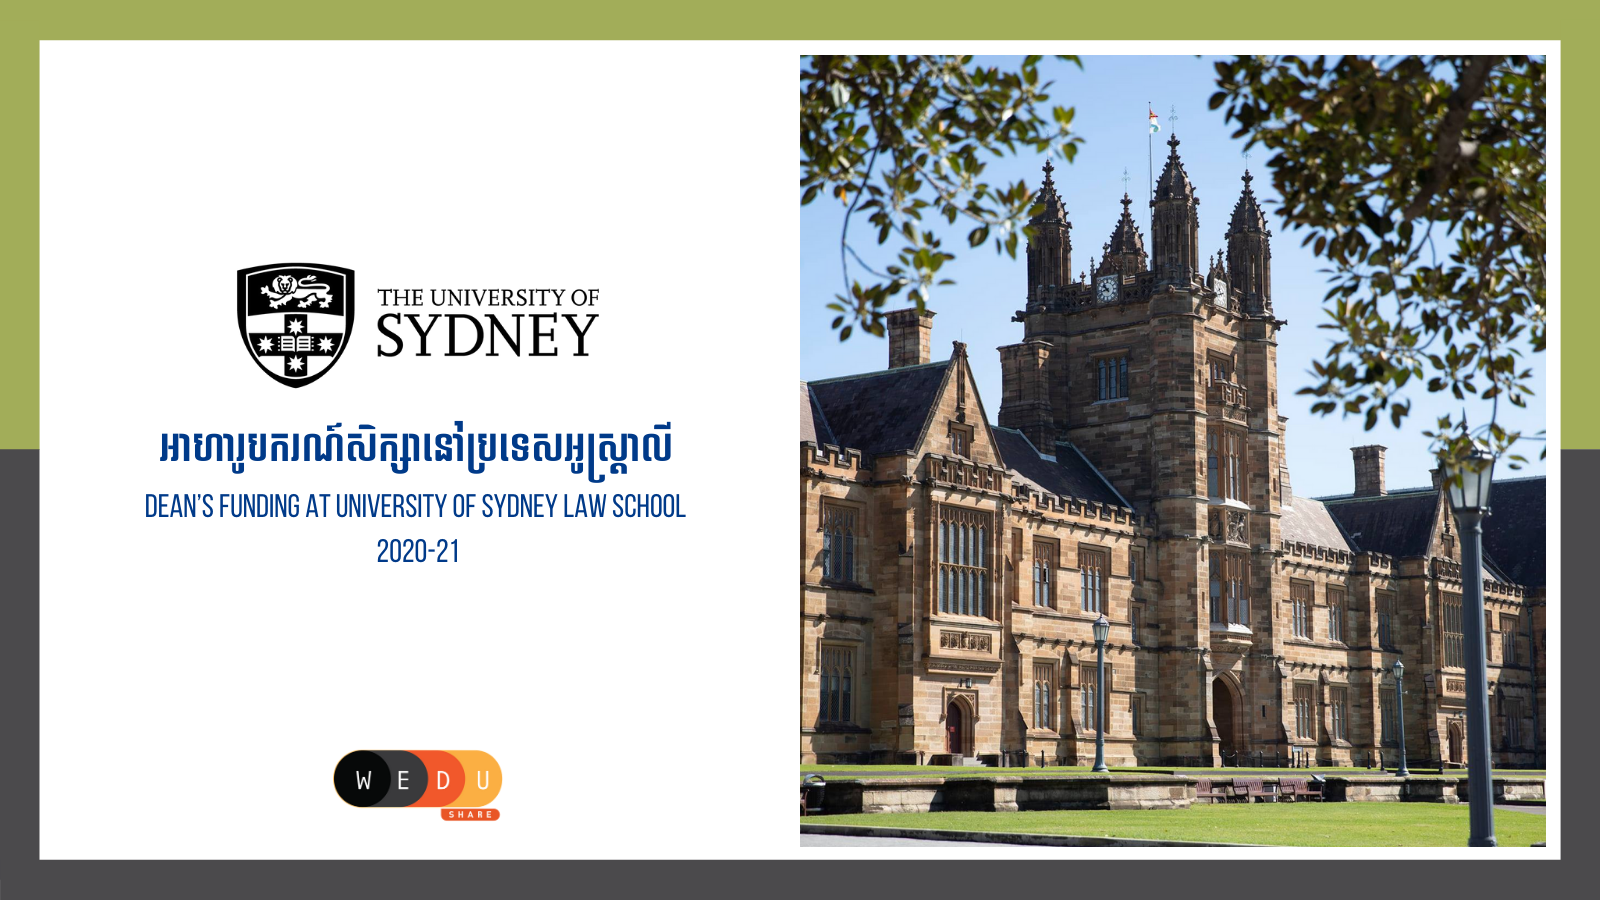 Dean's Funding At University Of Sydney Law School 2020-21